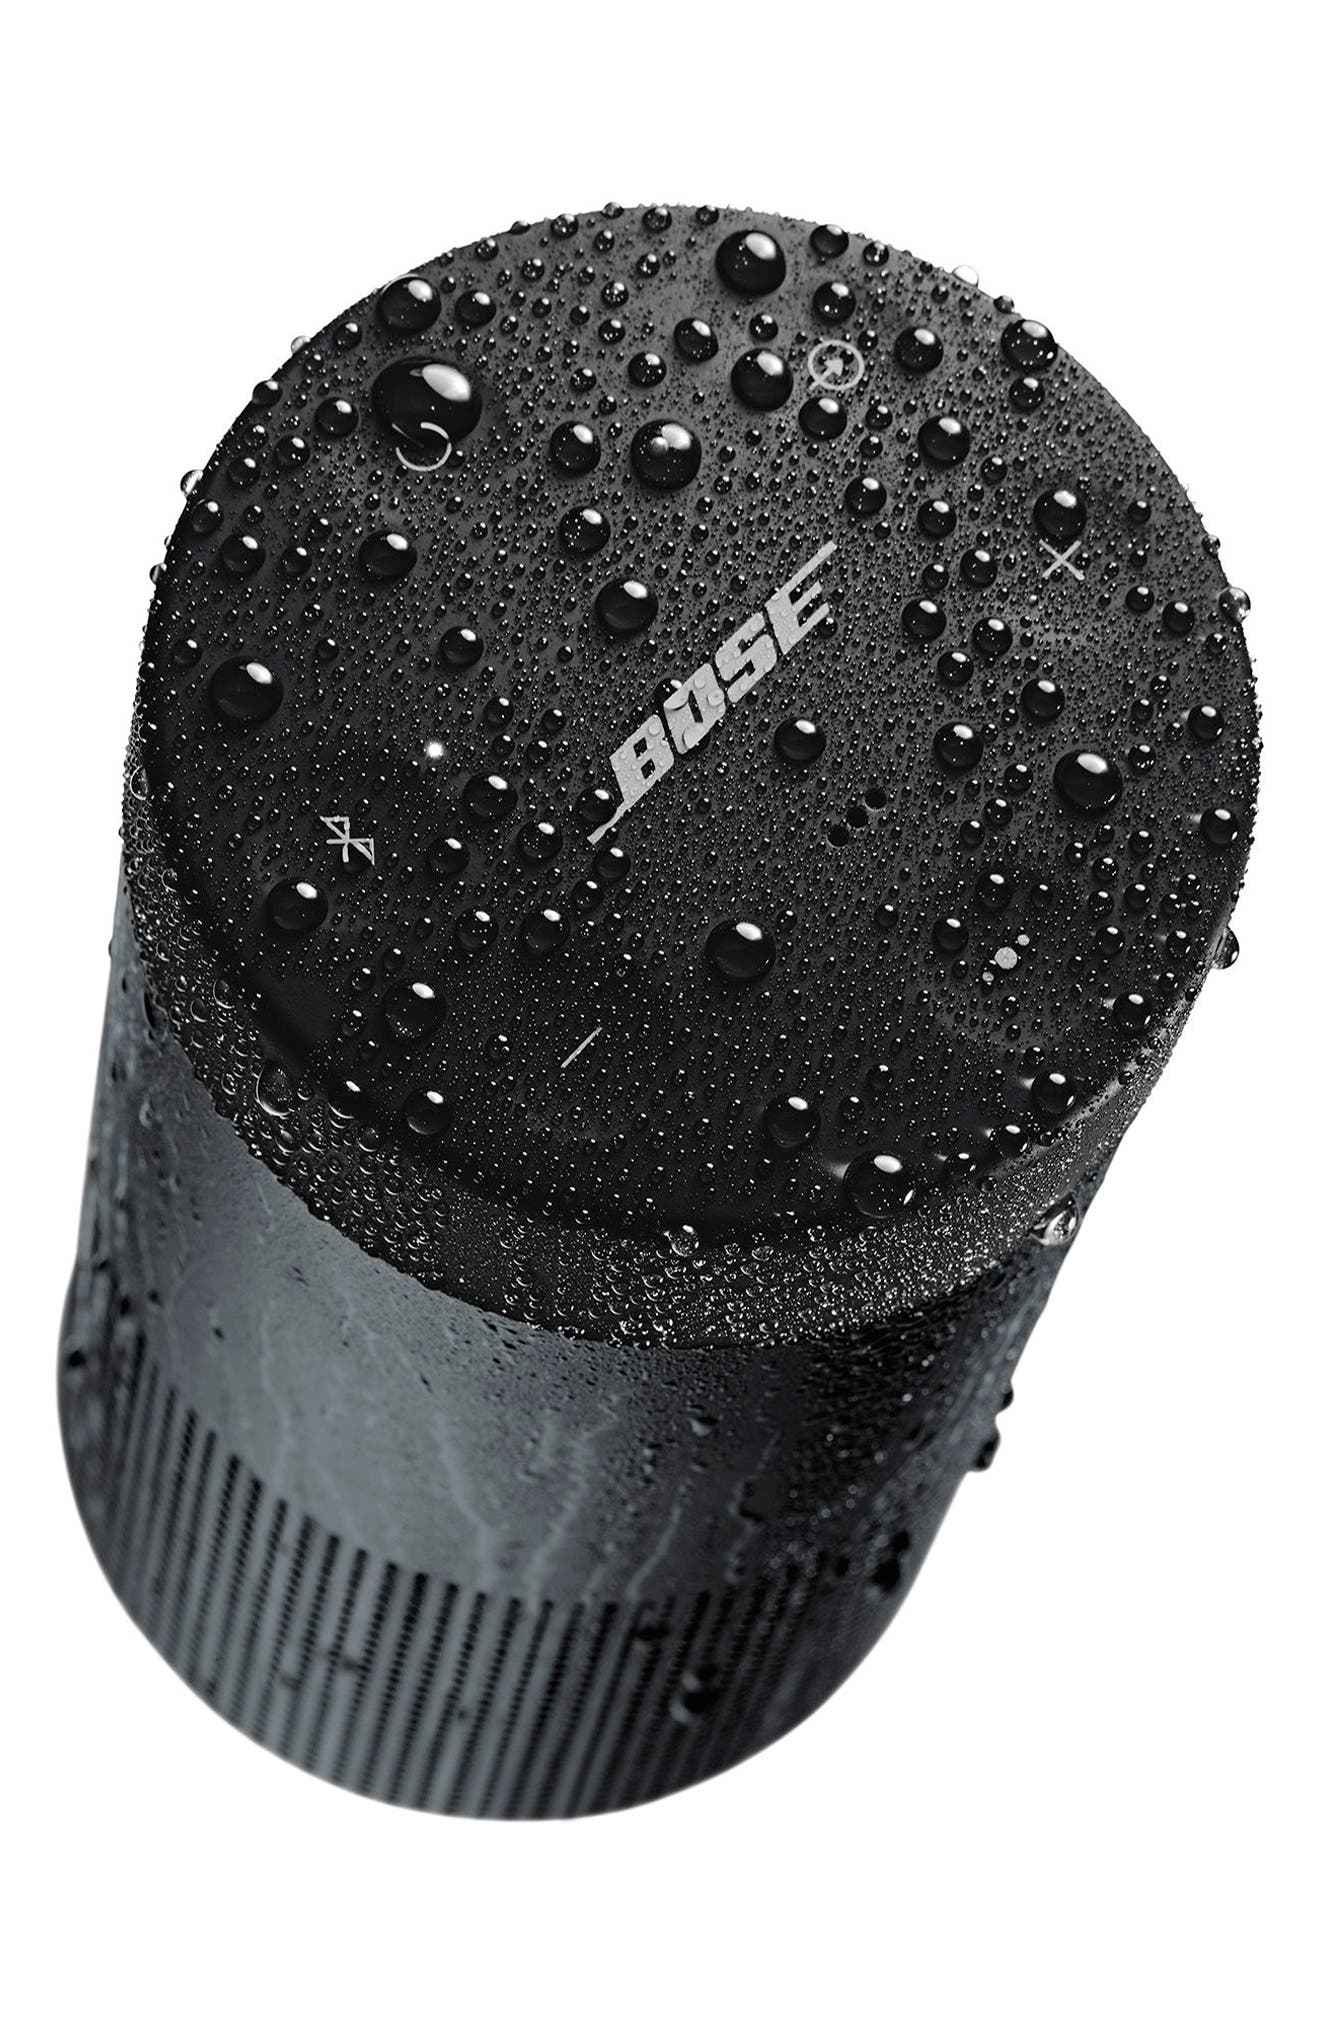 SoundLink<sup>®</sup> Revolve Bluetooth<sup>®</sup> Speaker,                             Alternate thumbnail 4, color,                             Black